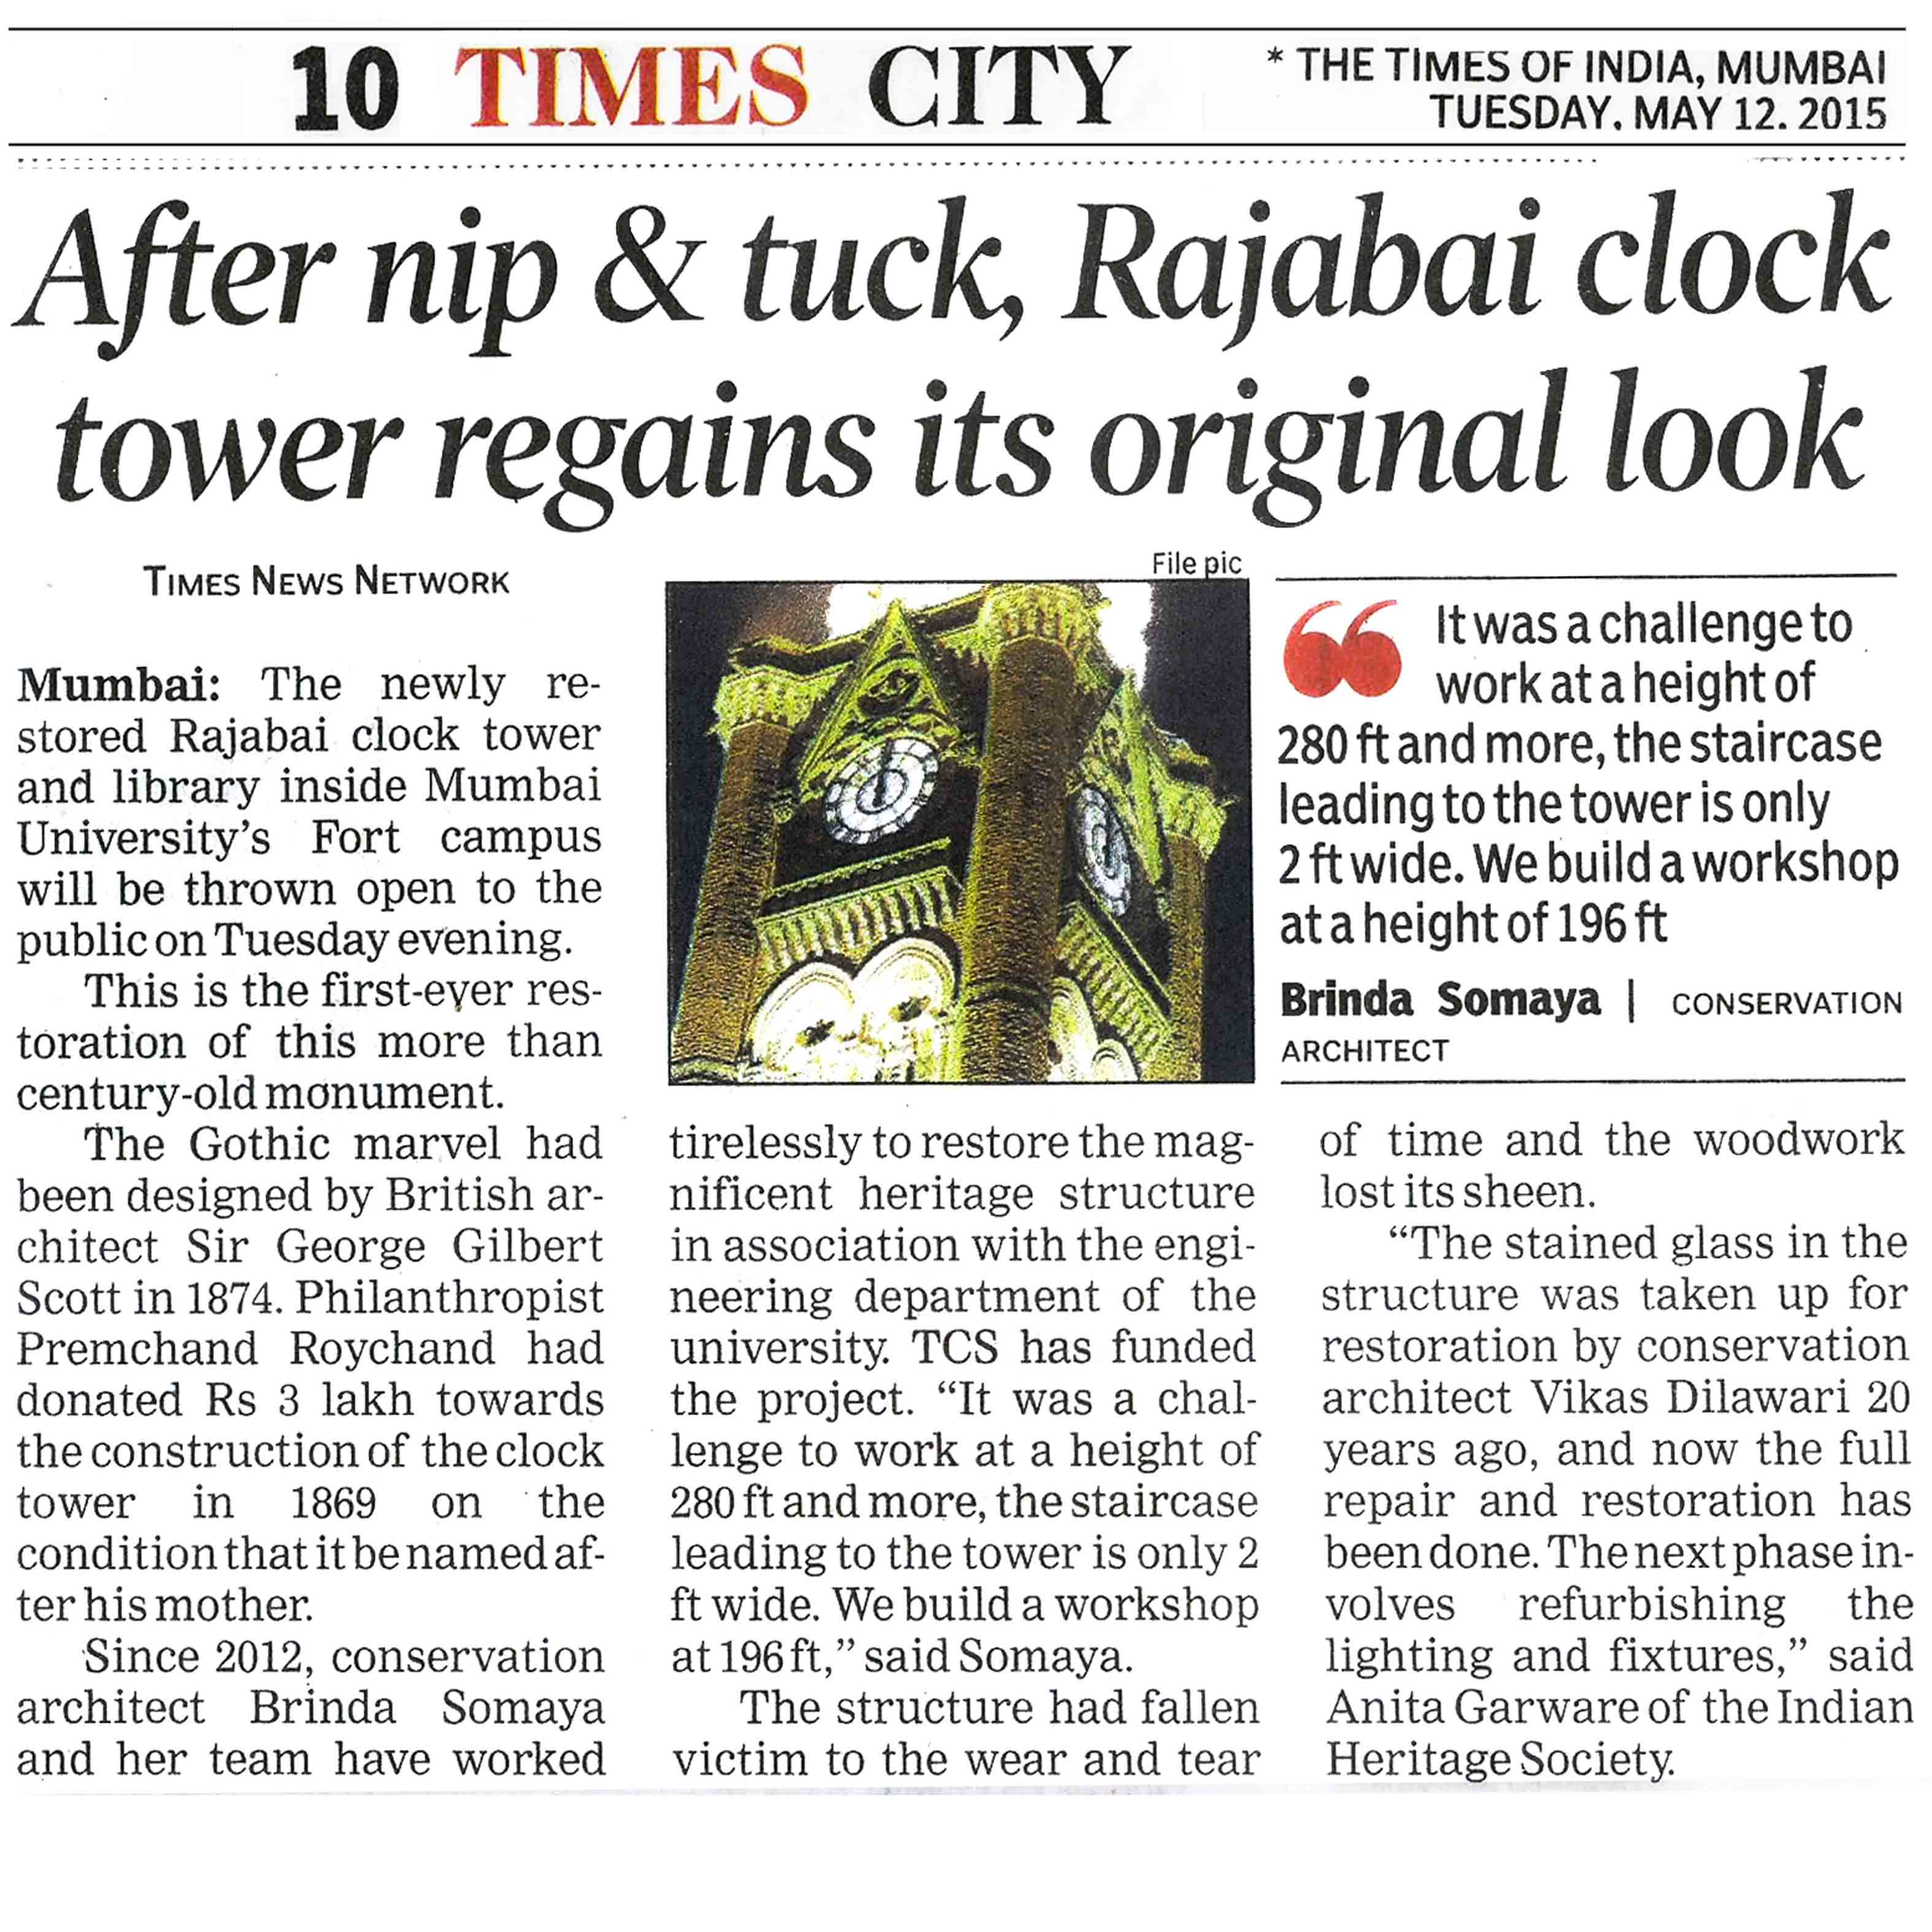 The Times of India - After nip and tuck, Rajabai clock tower regains its original look